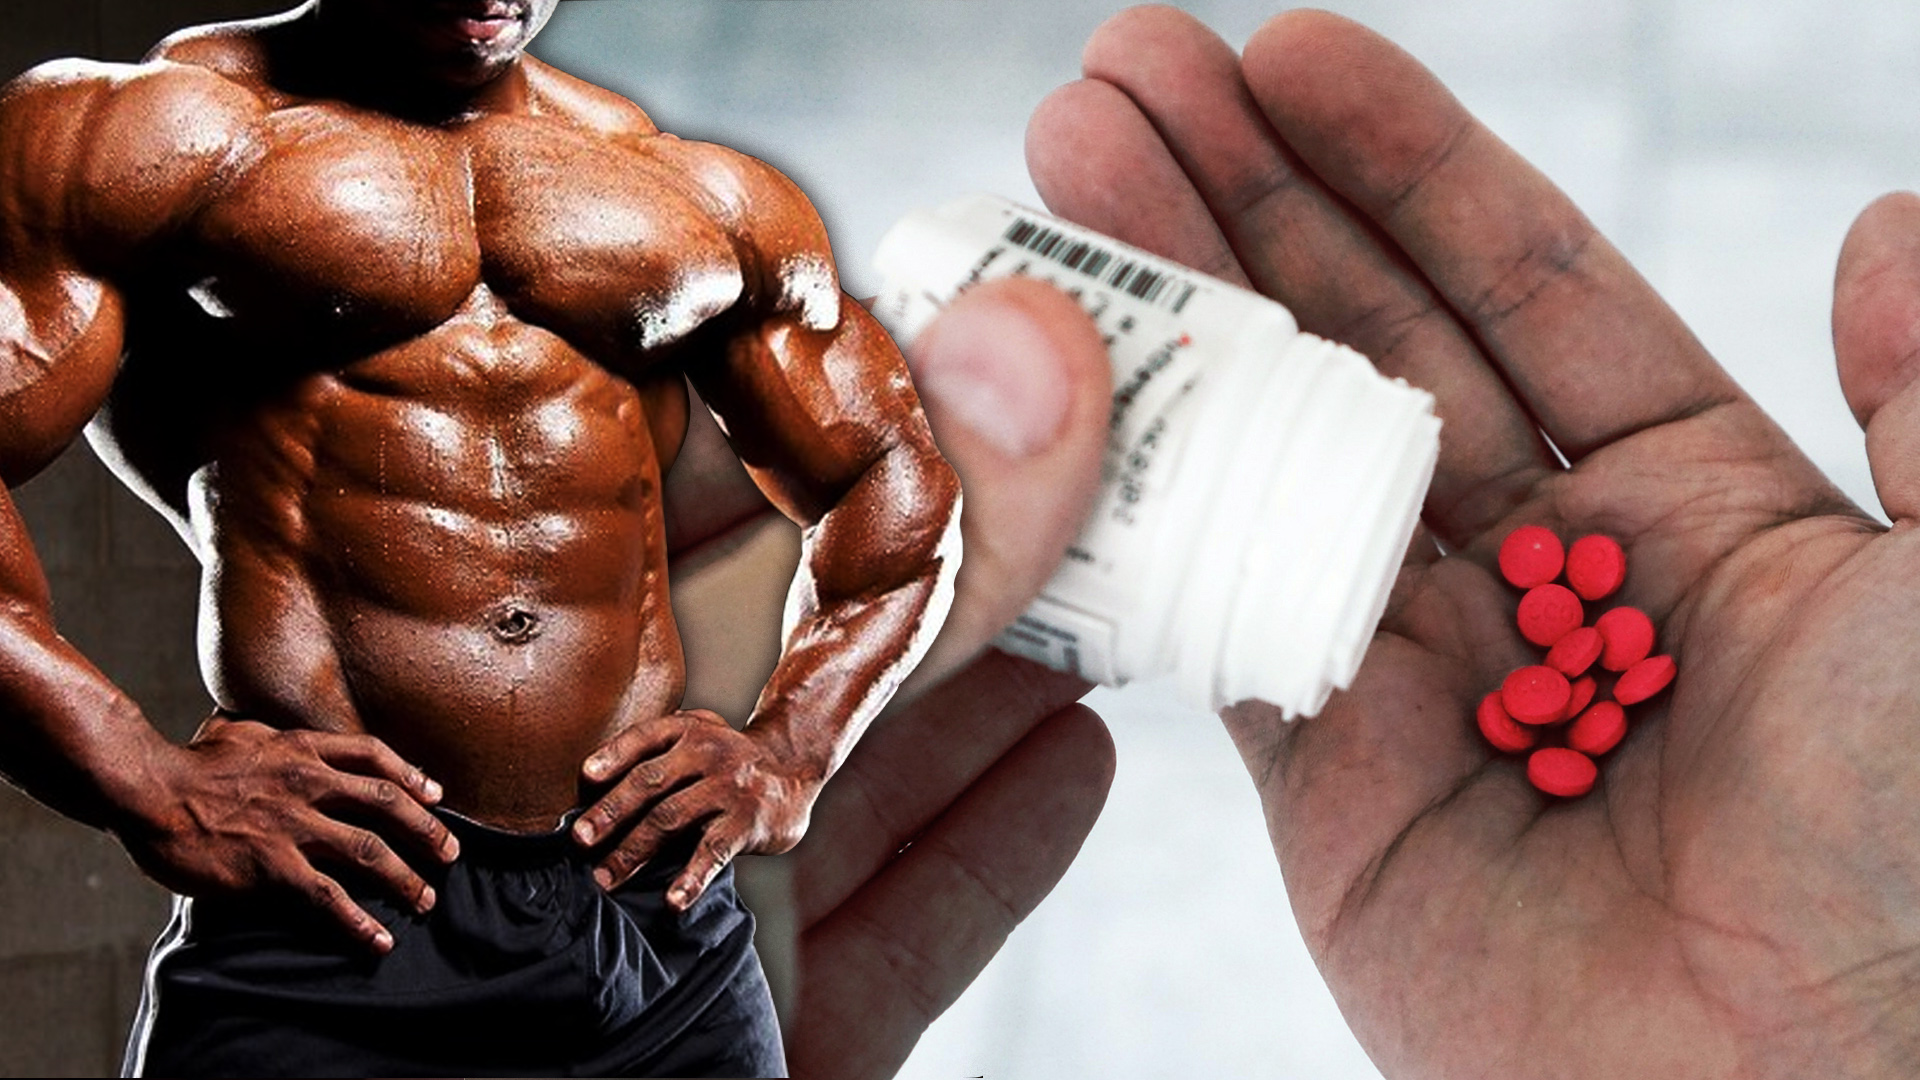 Bodybuilder with oral steroid pills on hands